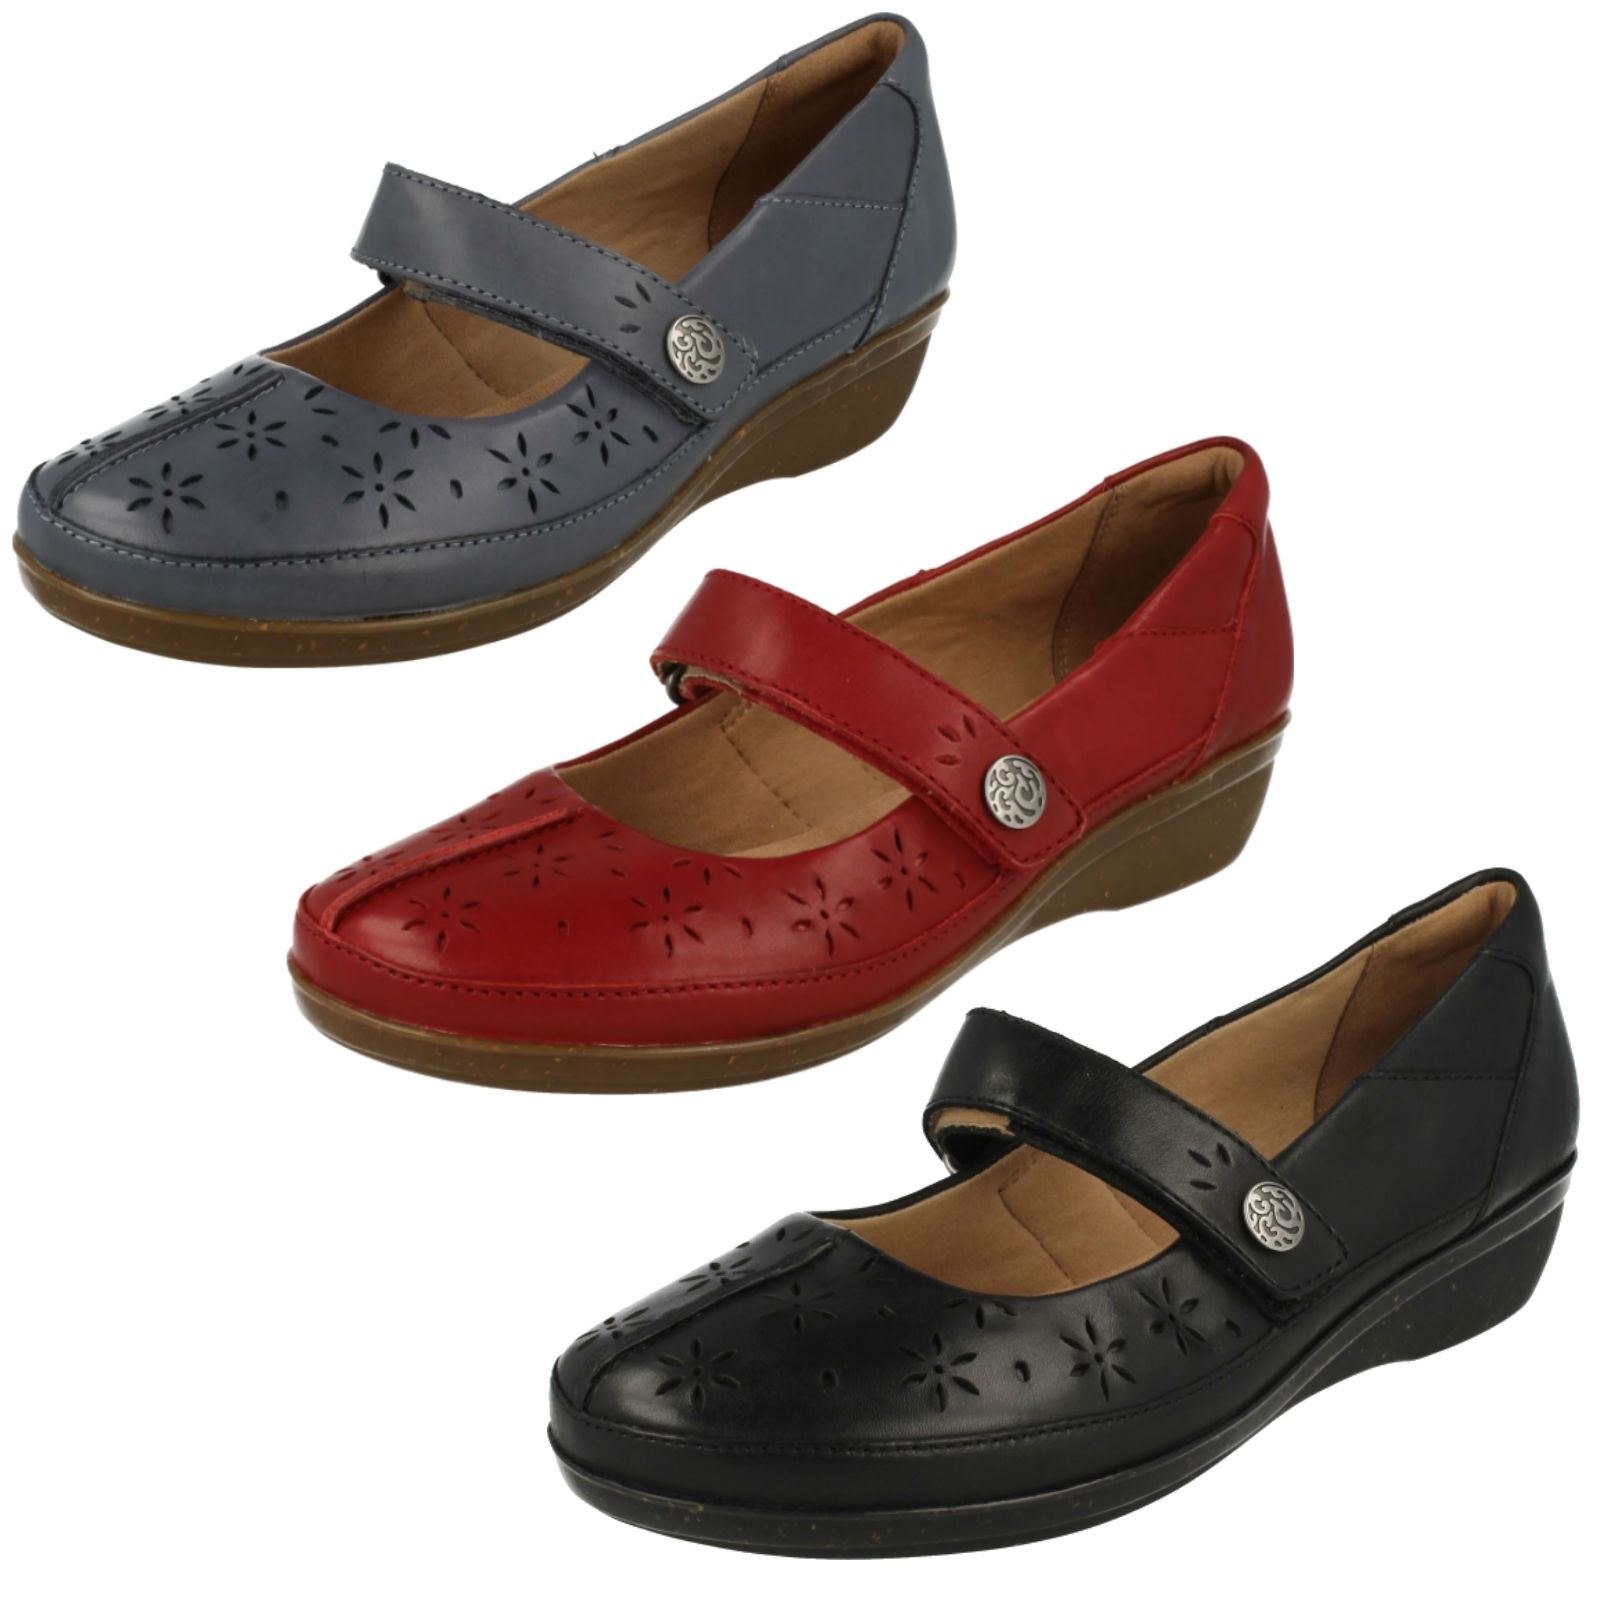 61464292de9 Details about Ladies Clarks Cushion Soft Casual Hook   Loop Leather Shoes  Everlay Bai